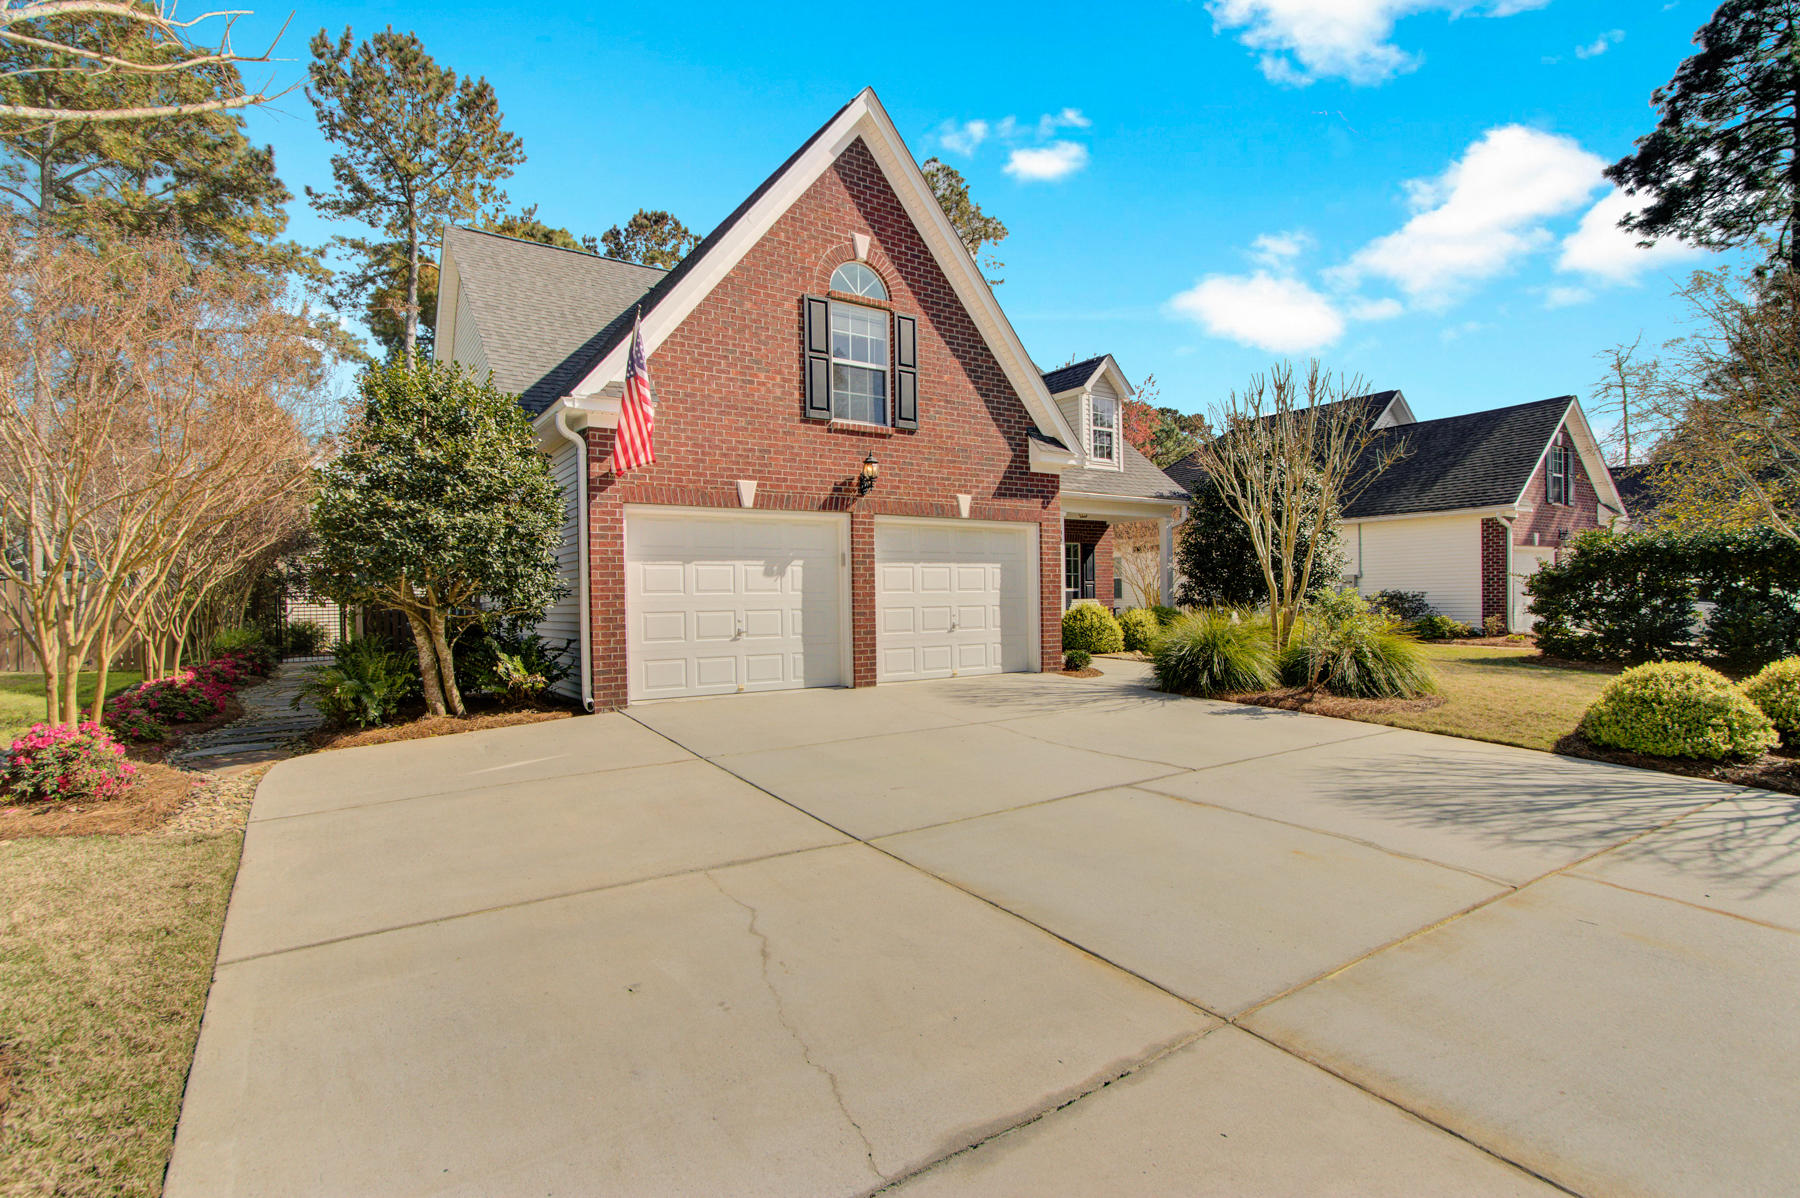 104 Bay Colony Court Summerville, Sc 29483